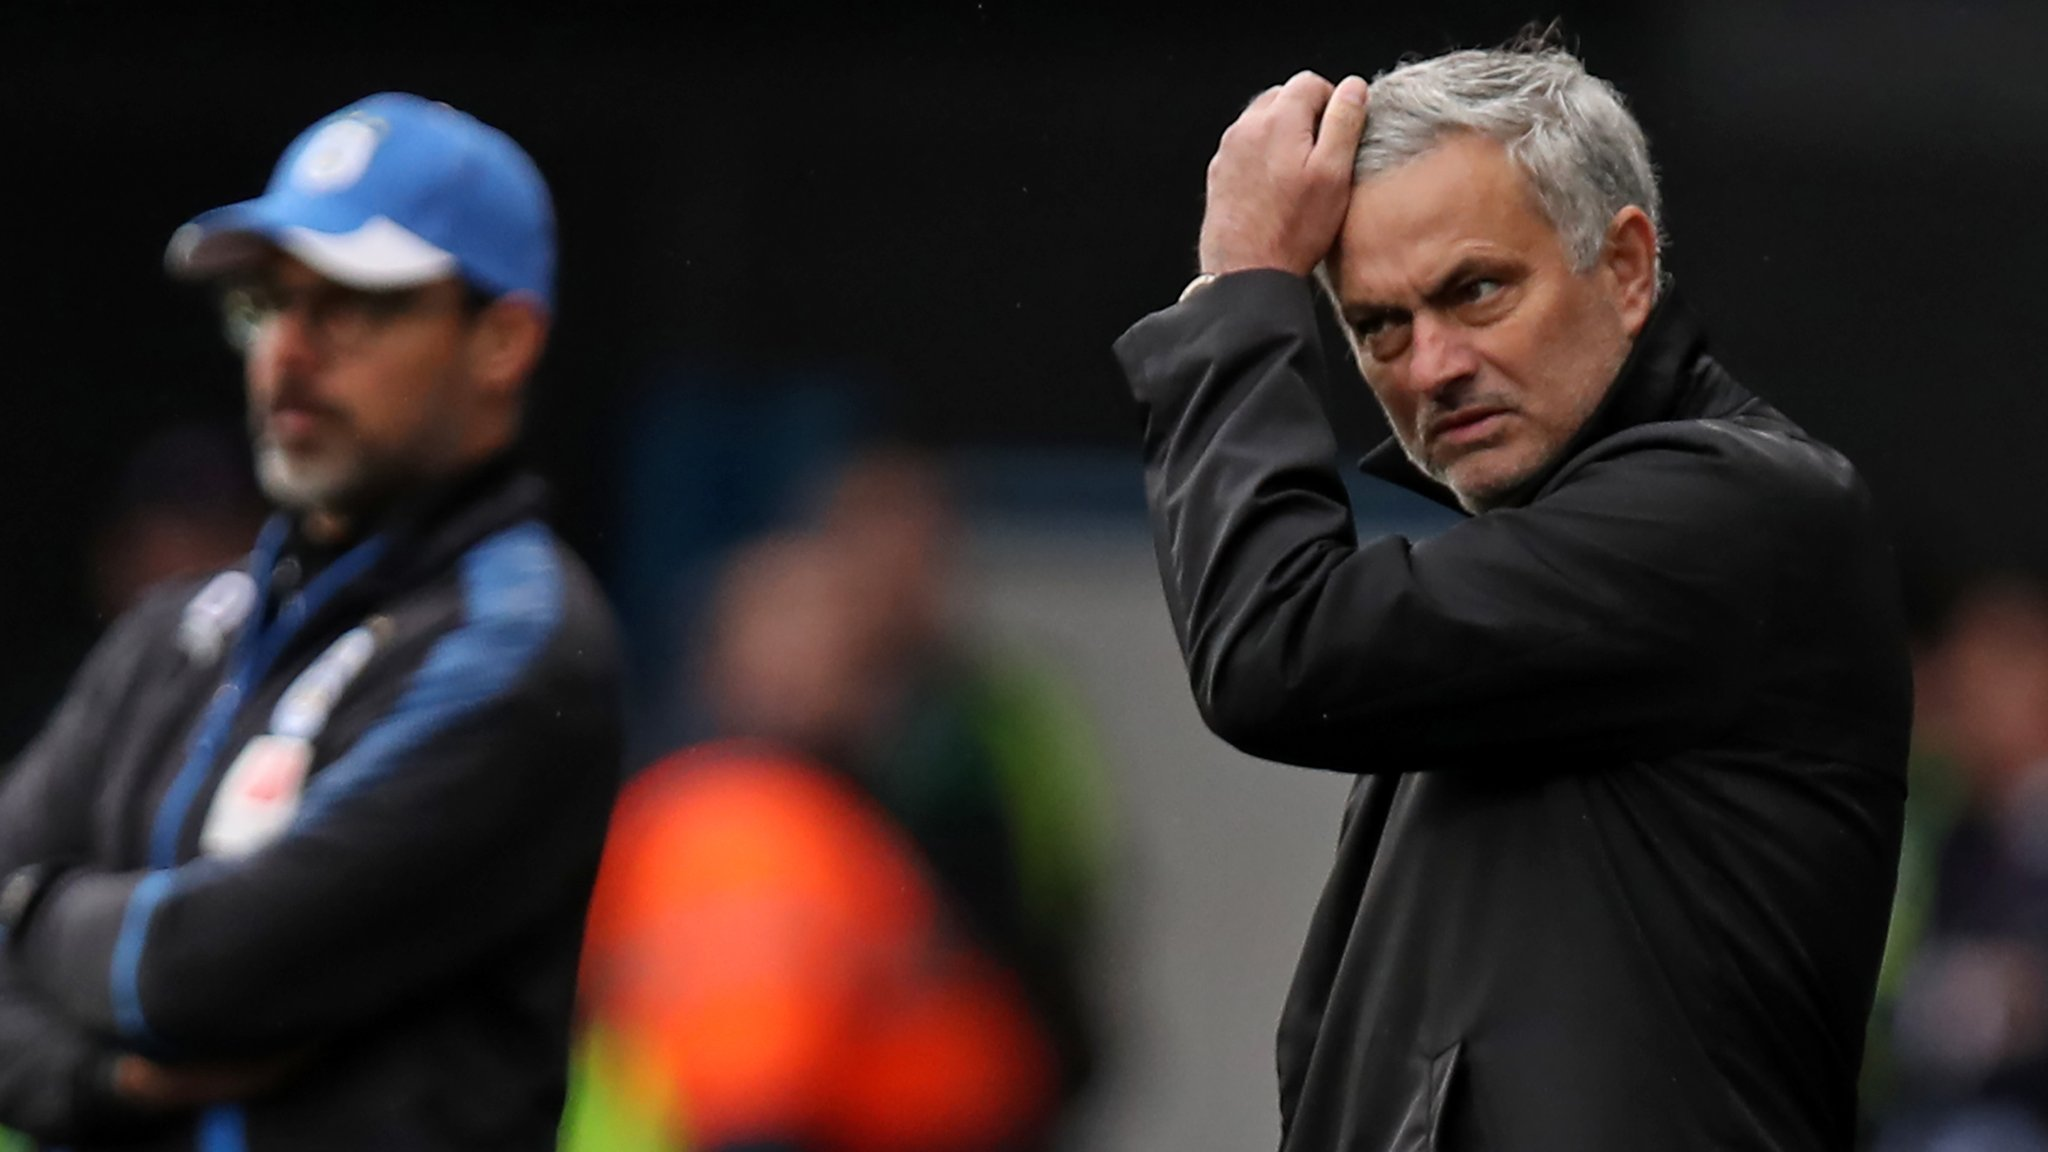 Shock defeat could happen again this season - Mourinho